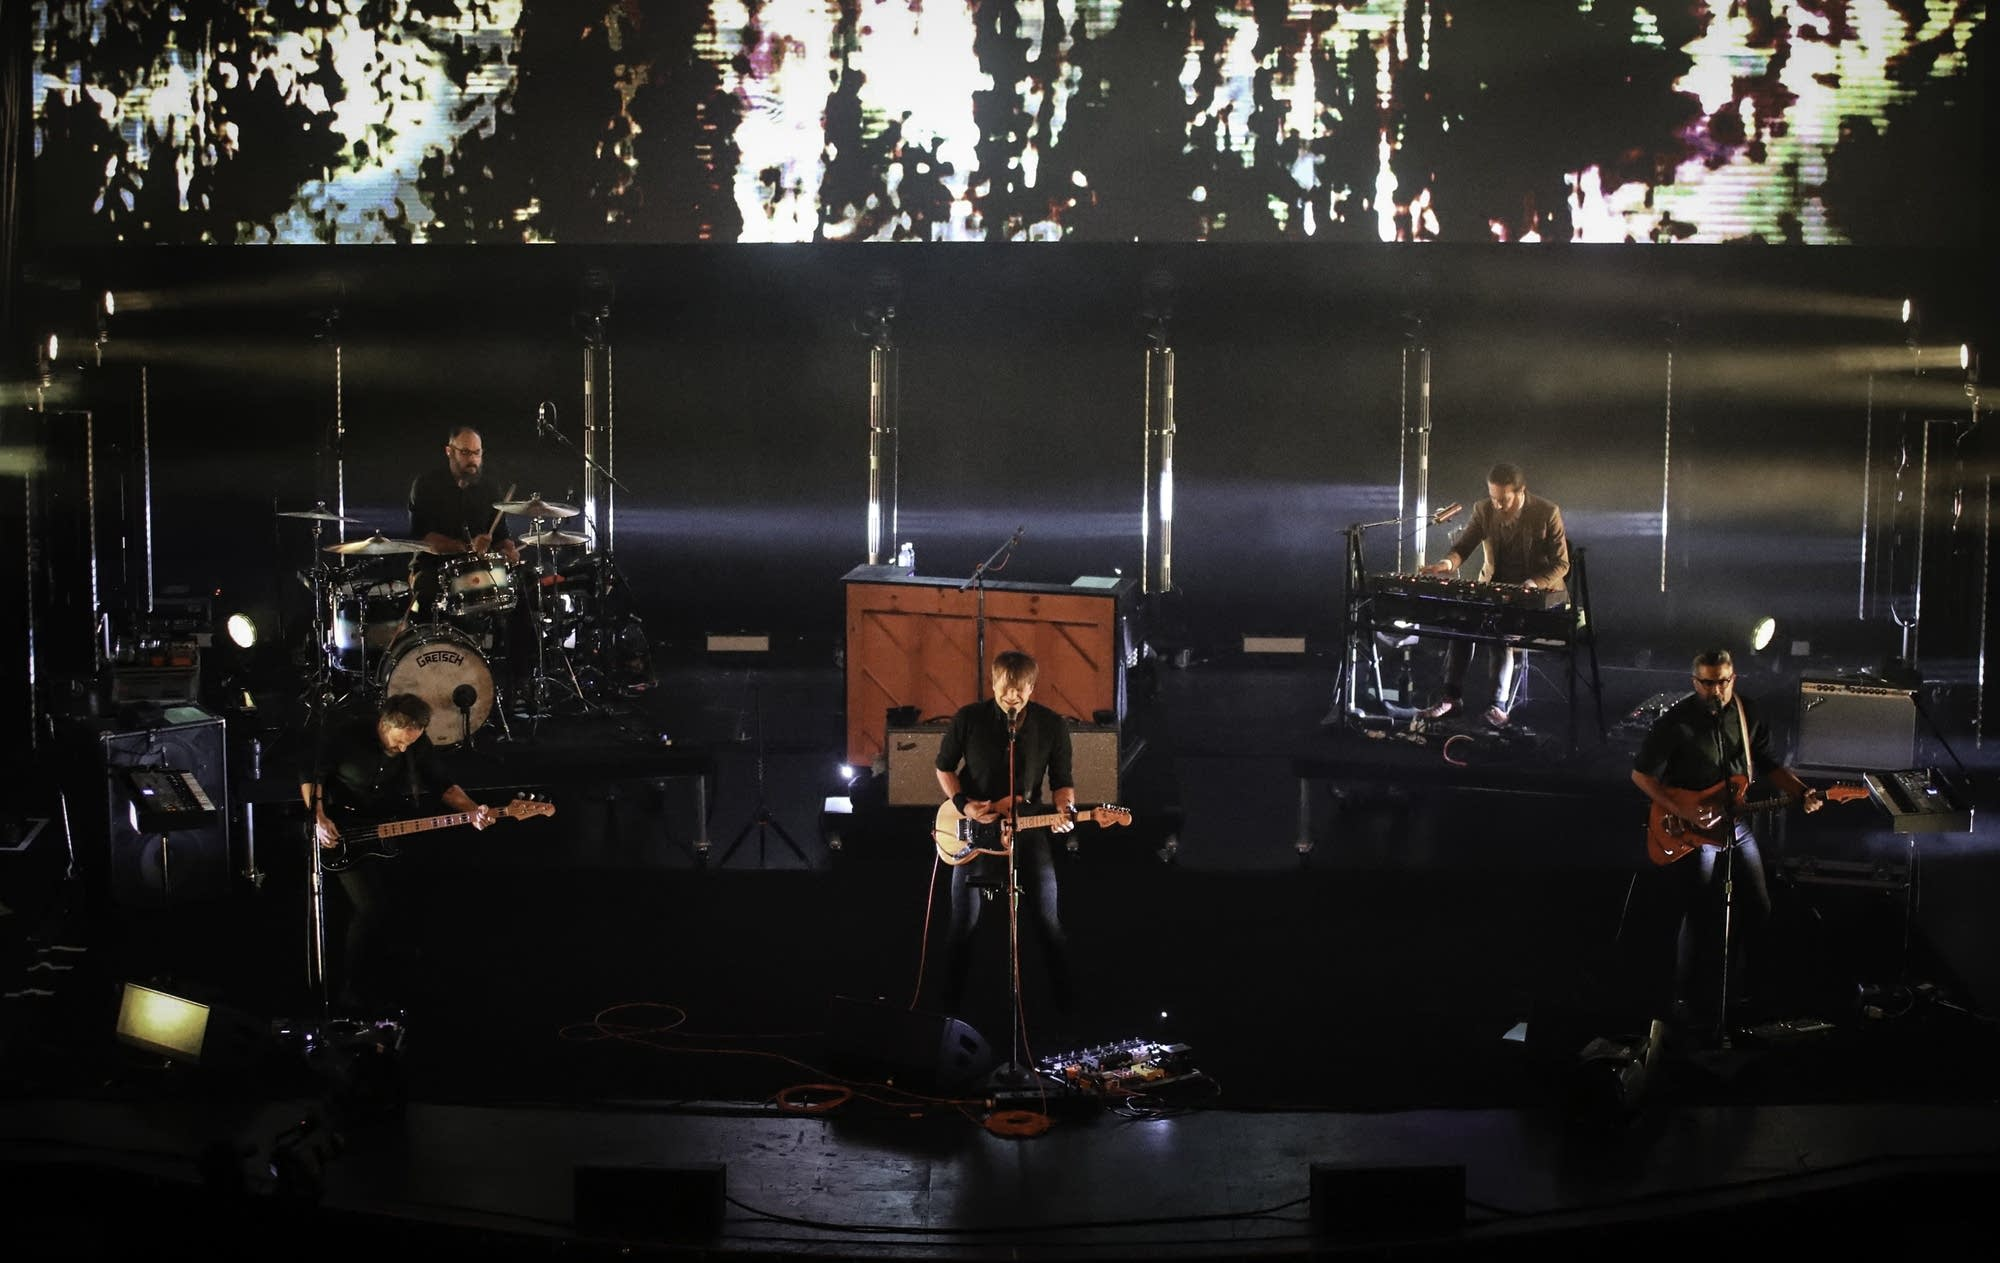 Death Cab for Cutie in concert at the Palace Theatre in St. Paul